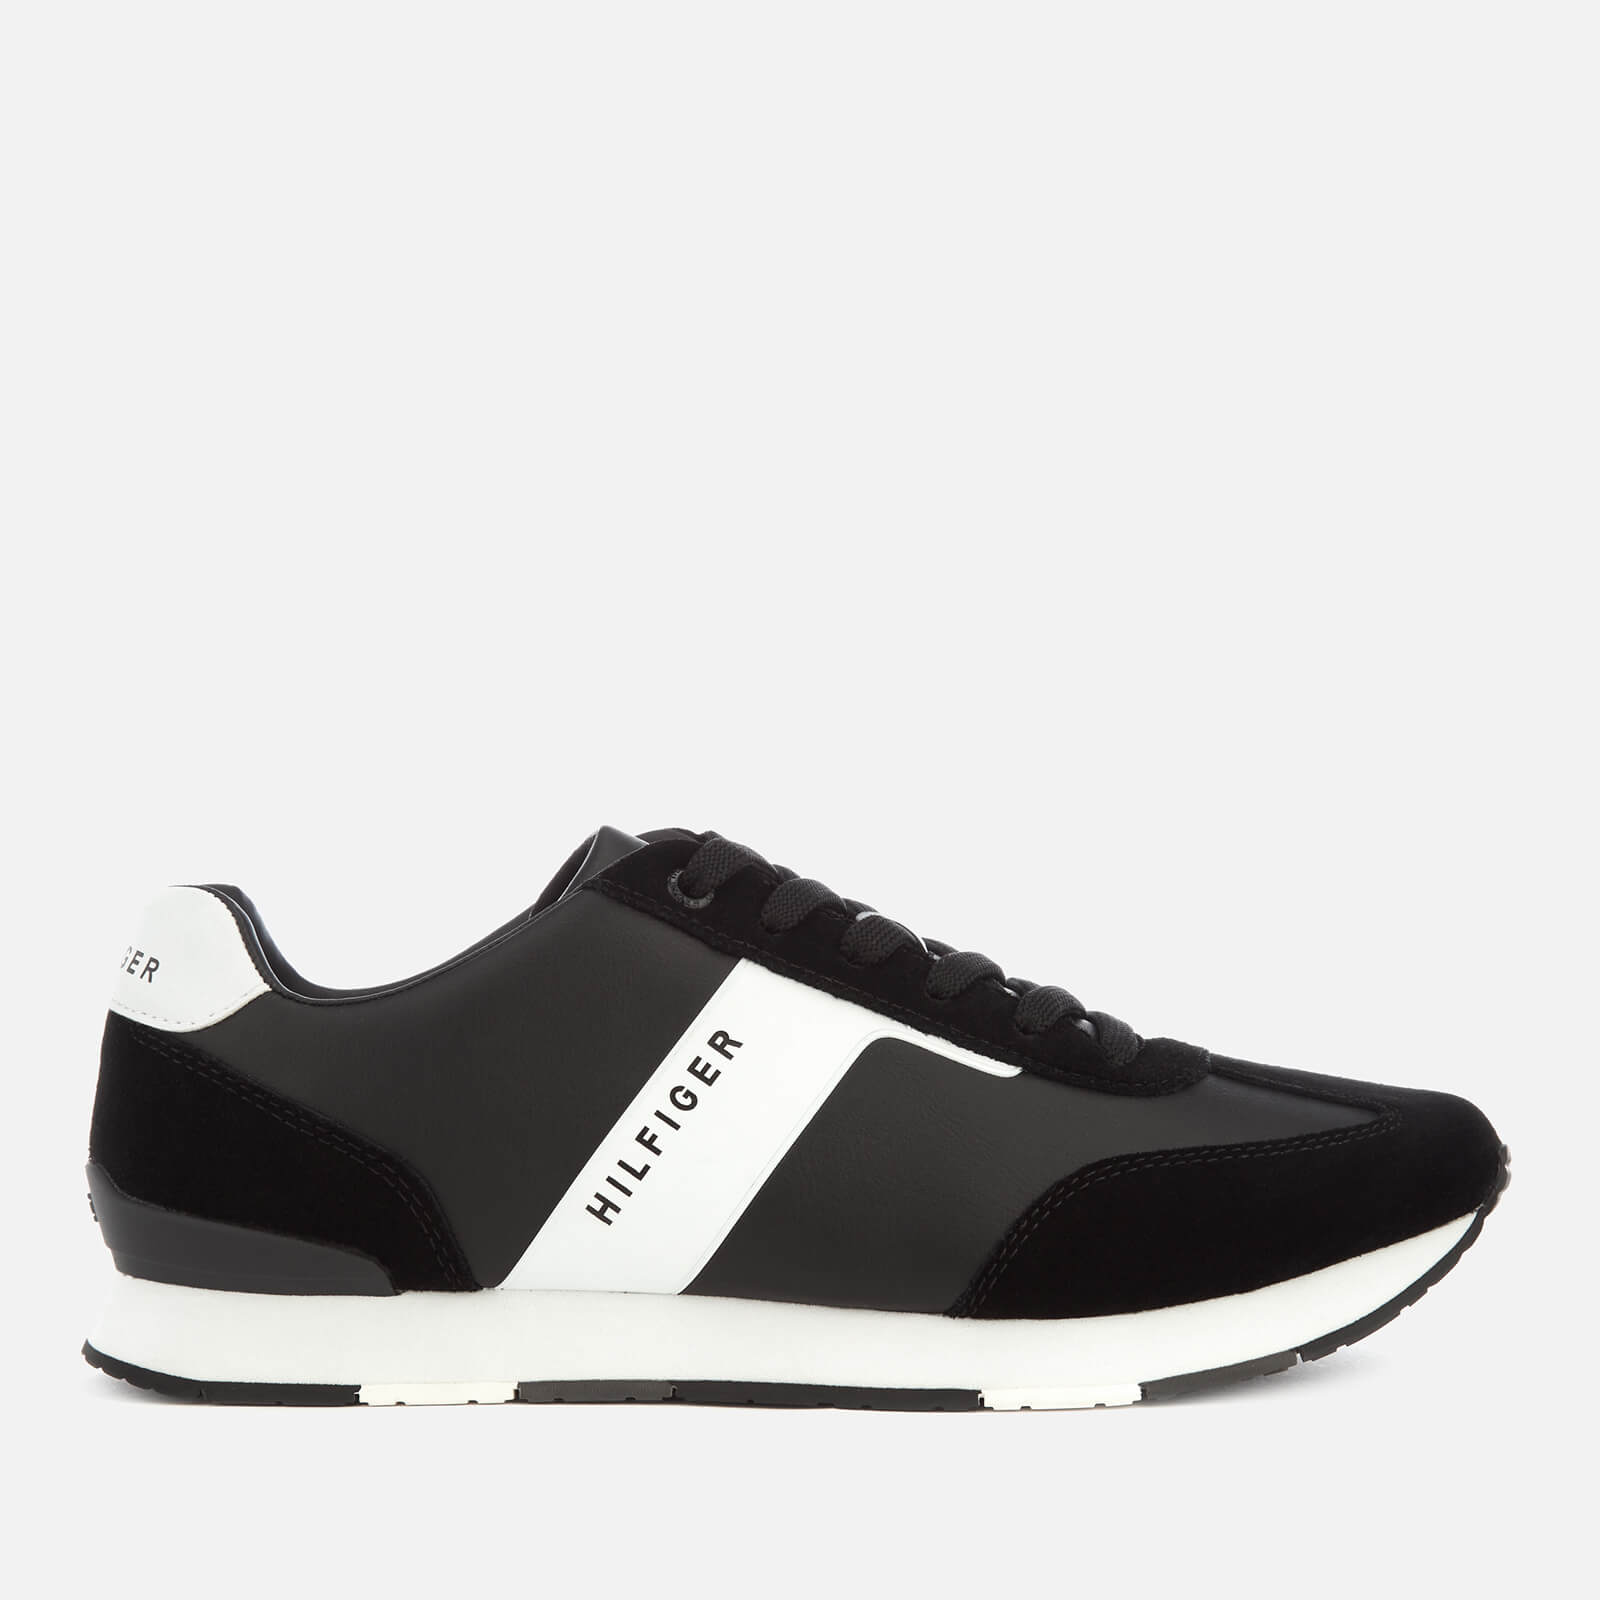 5b891c6ca Tommy Hilfiger Men s Leather Material Mix Runner Trainers - Black Mens  Footwear